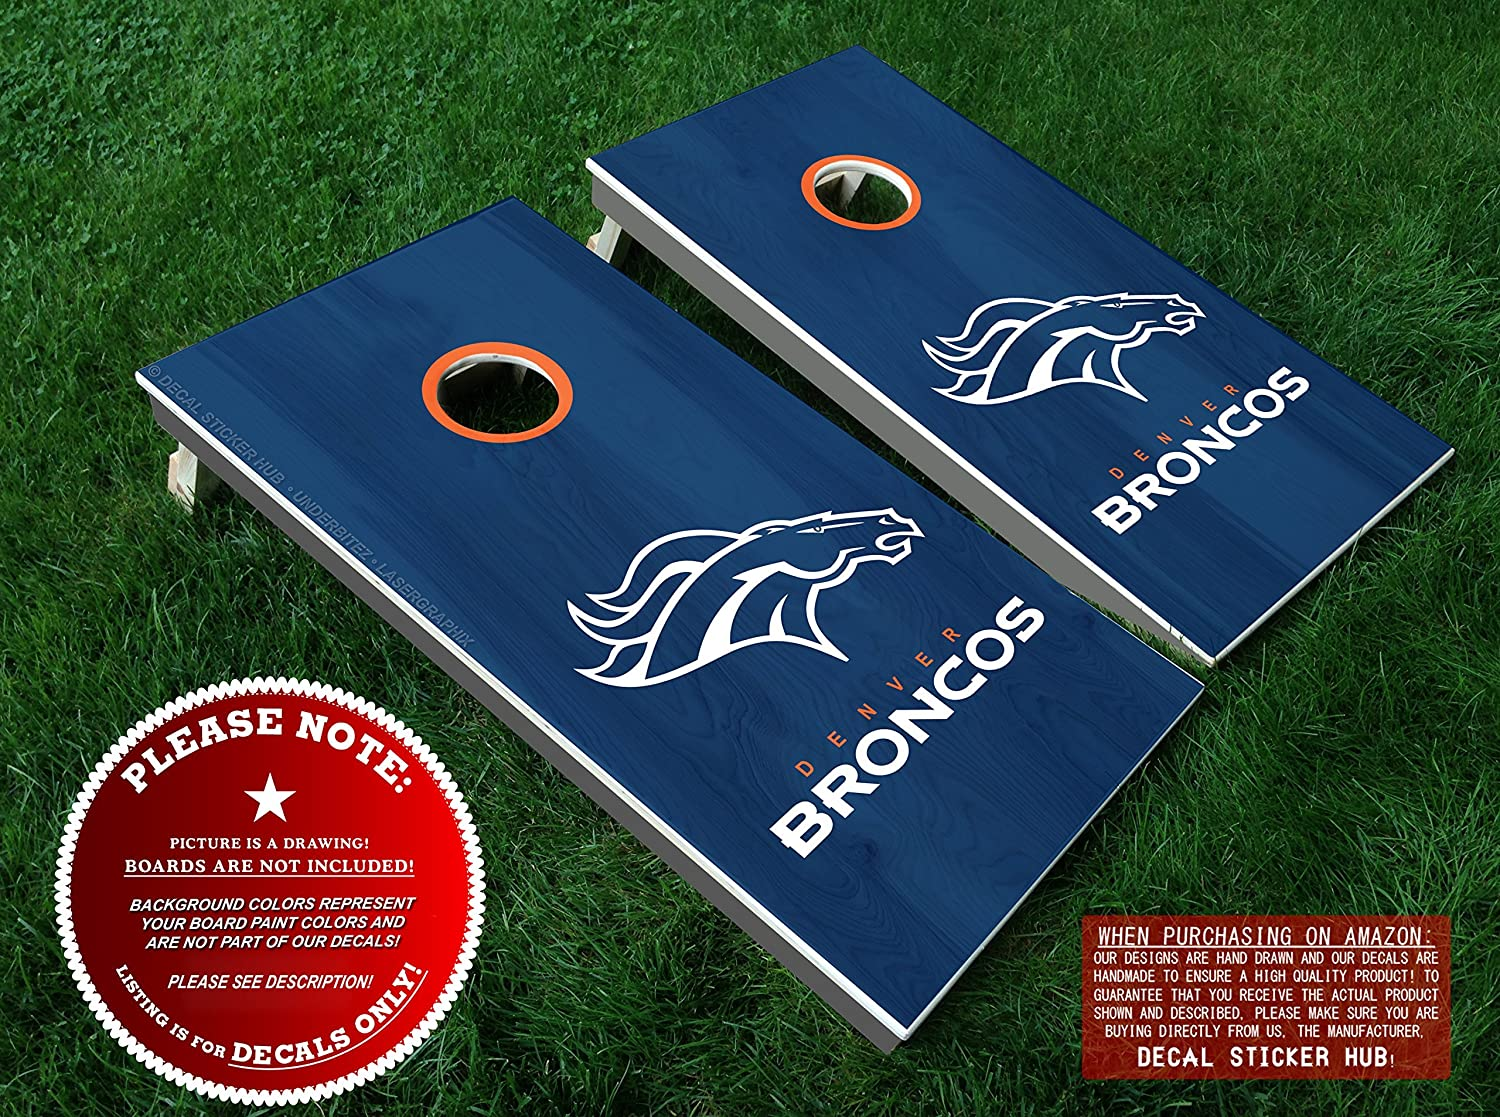 Broncos cornhole decals orange and white diy vinyl stickers for bean bag toss eight 8 vinyl decals for lawn games cornhole board building and